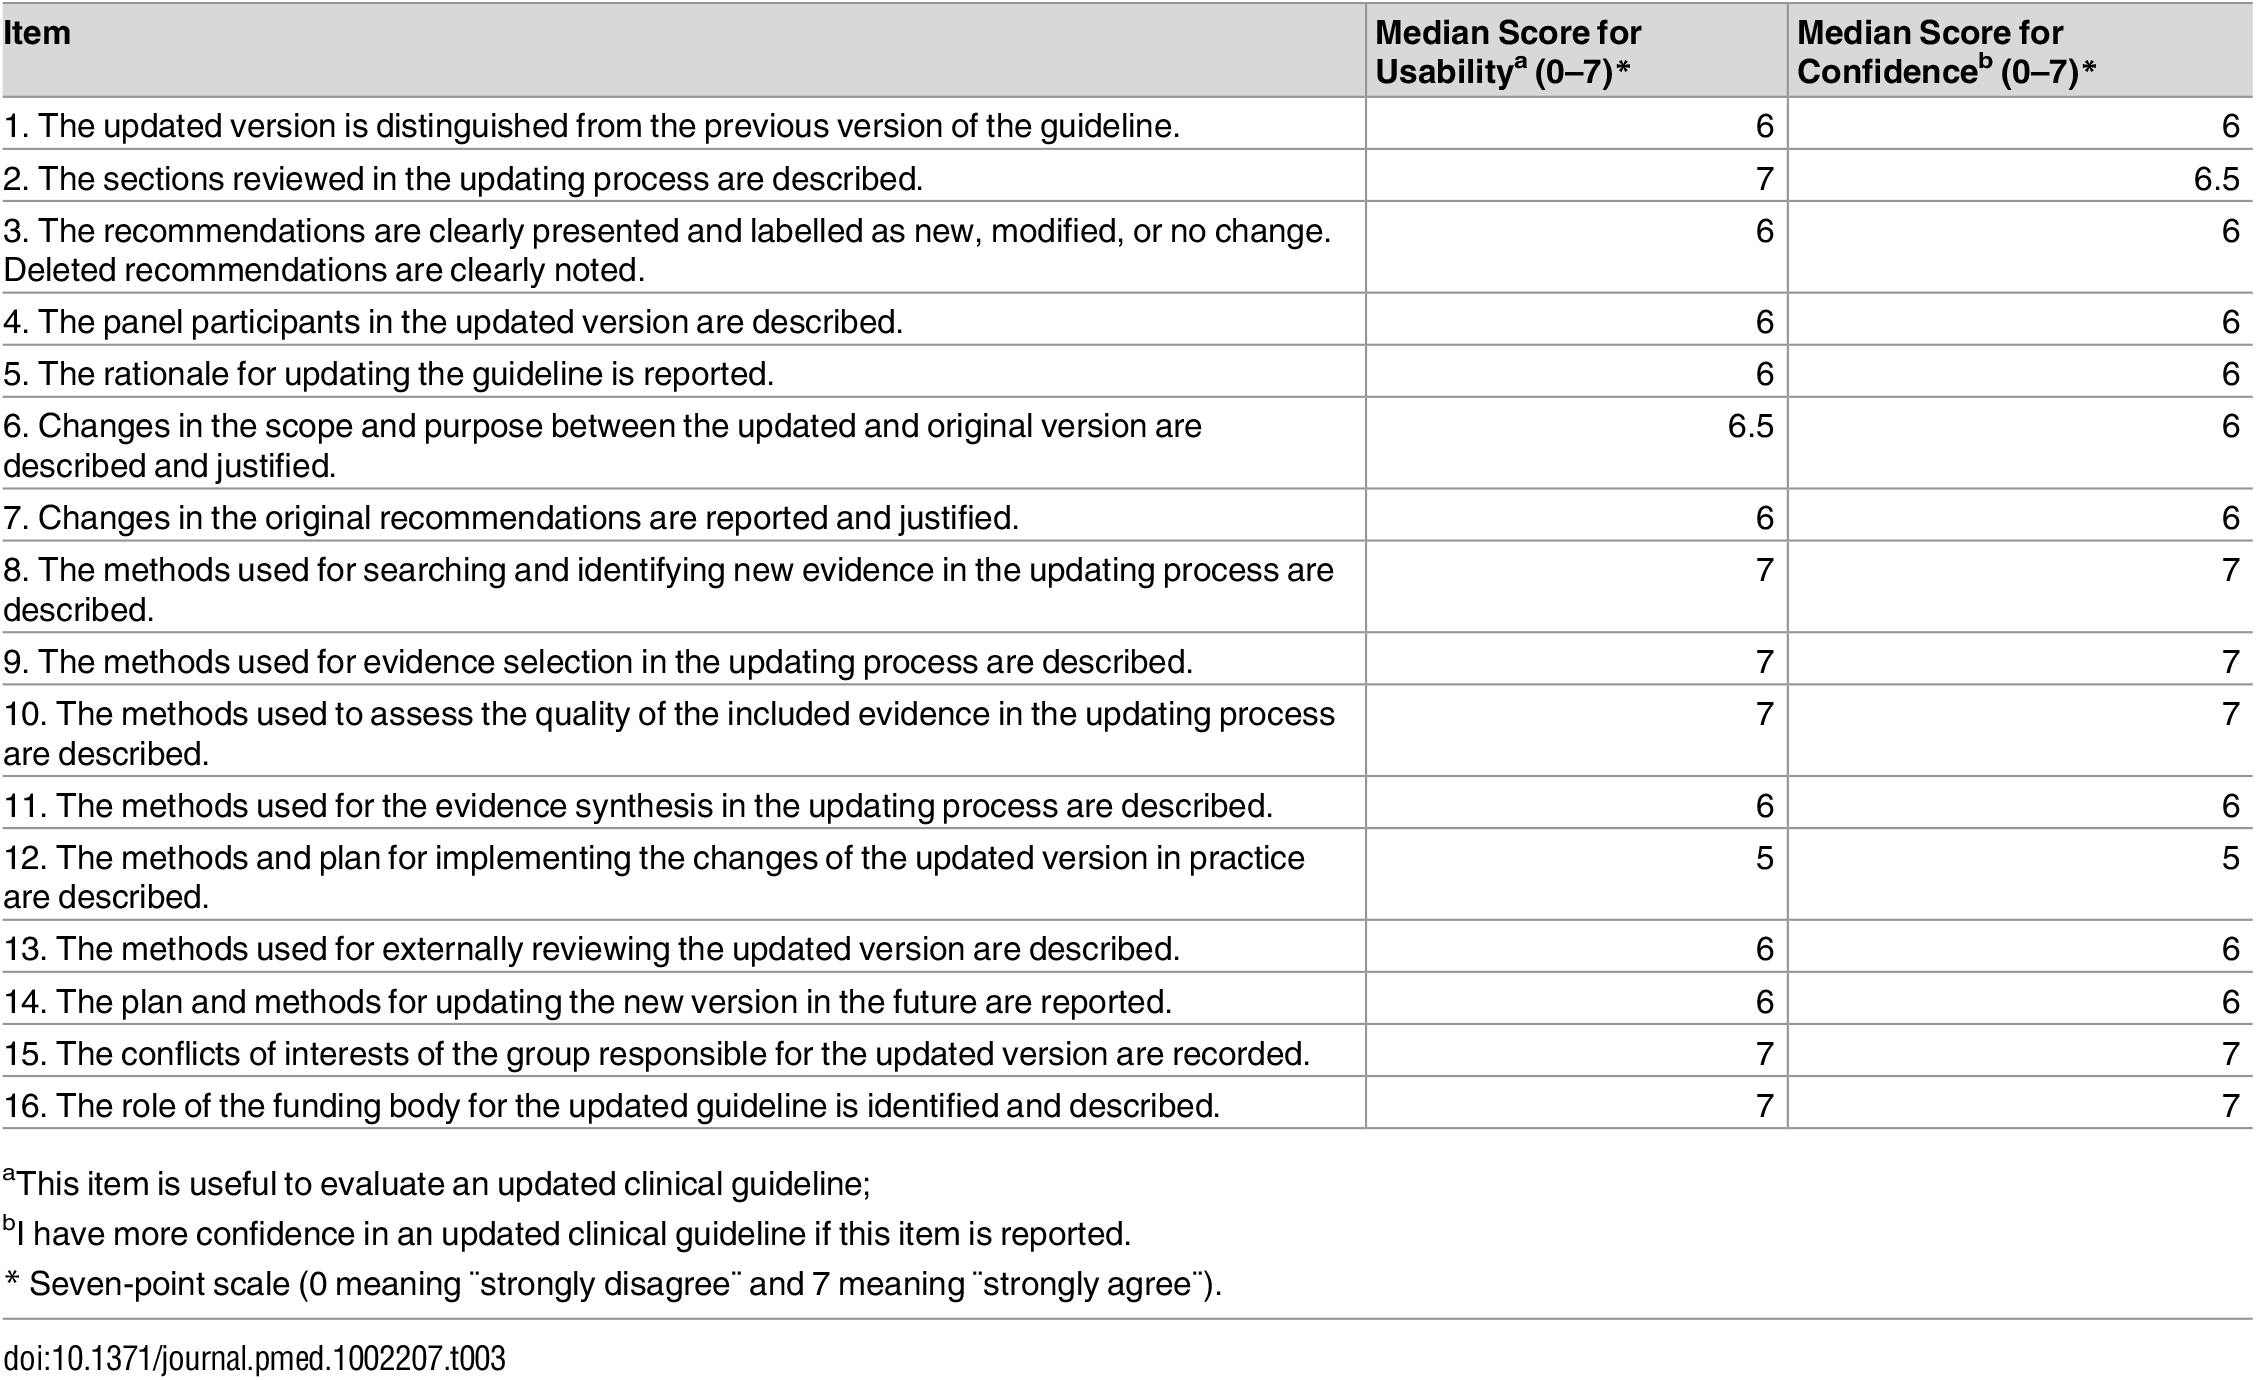 Results of the external review with clinical guideline methodologists.